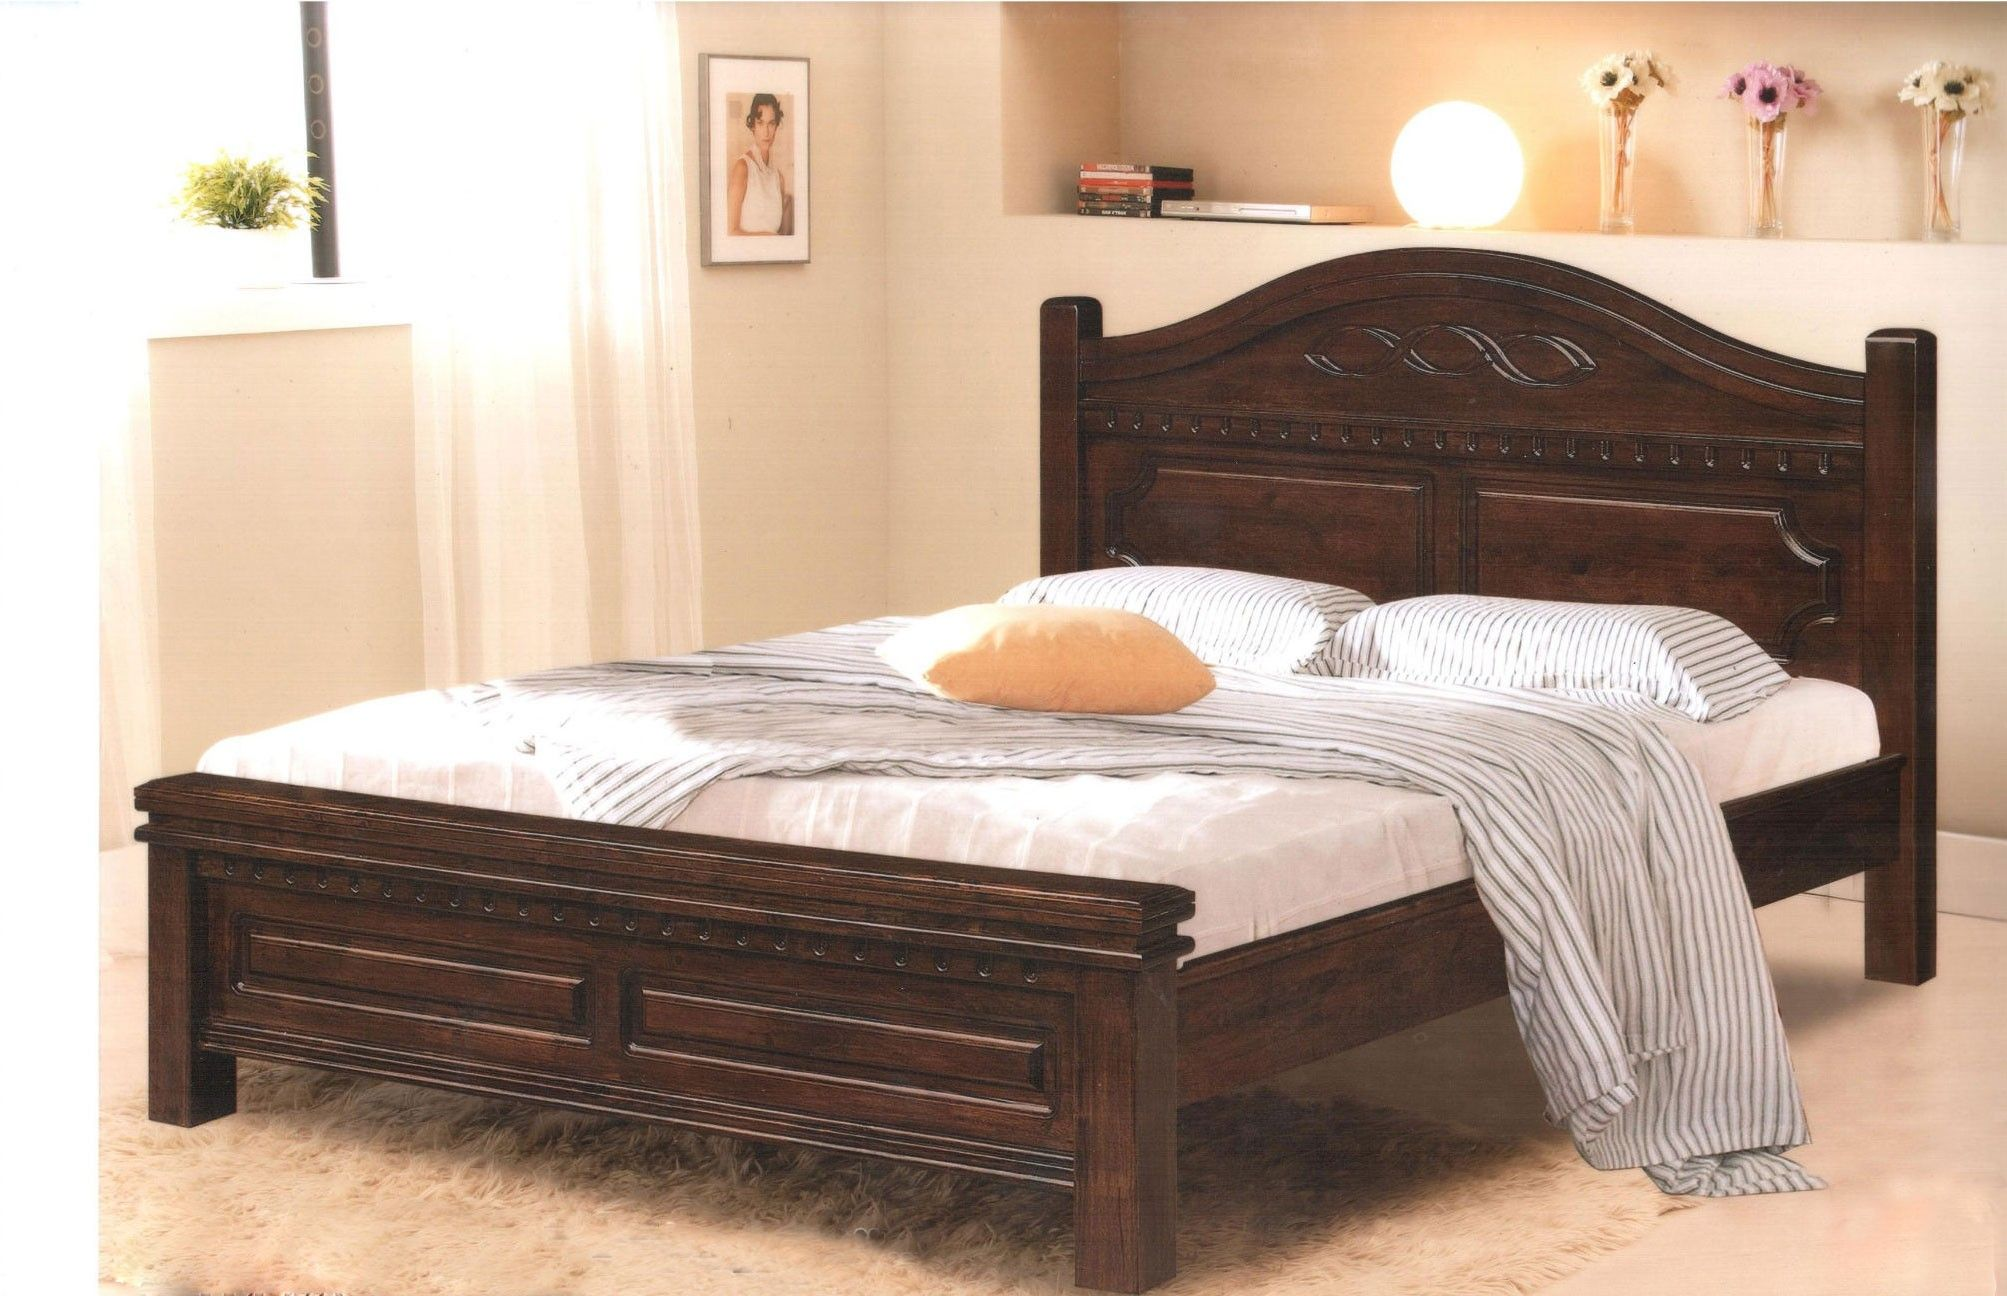 Elegant Full Size Wooden Bed Frame With Headboard In 2020 Bed